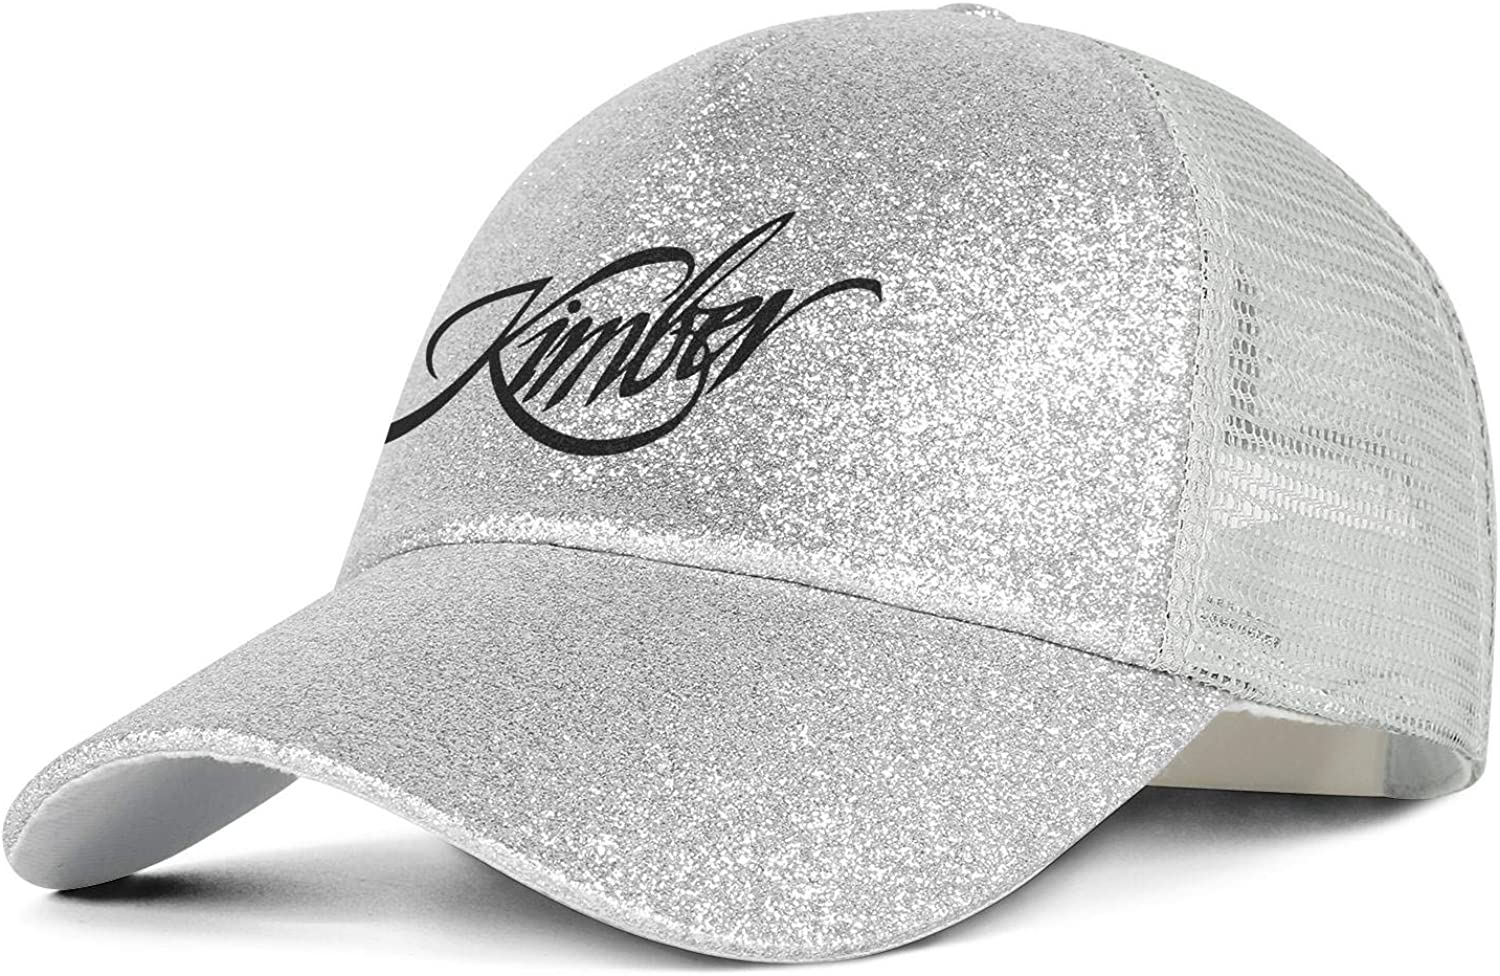 Kimber Firearms Ammo Mens Womens Cowboy Hat Nostalgic Fashion Sun Jeans Hat Funky Wide-Brimmed Hat Fishing Cap